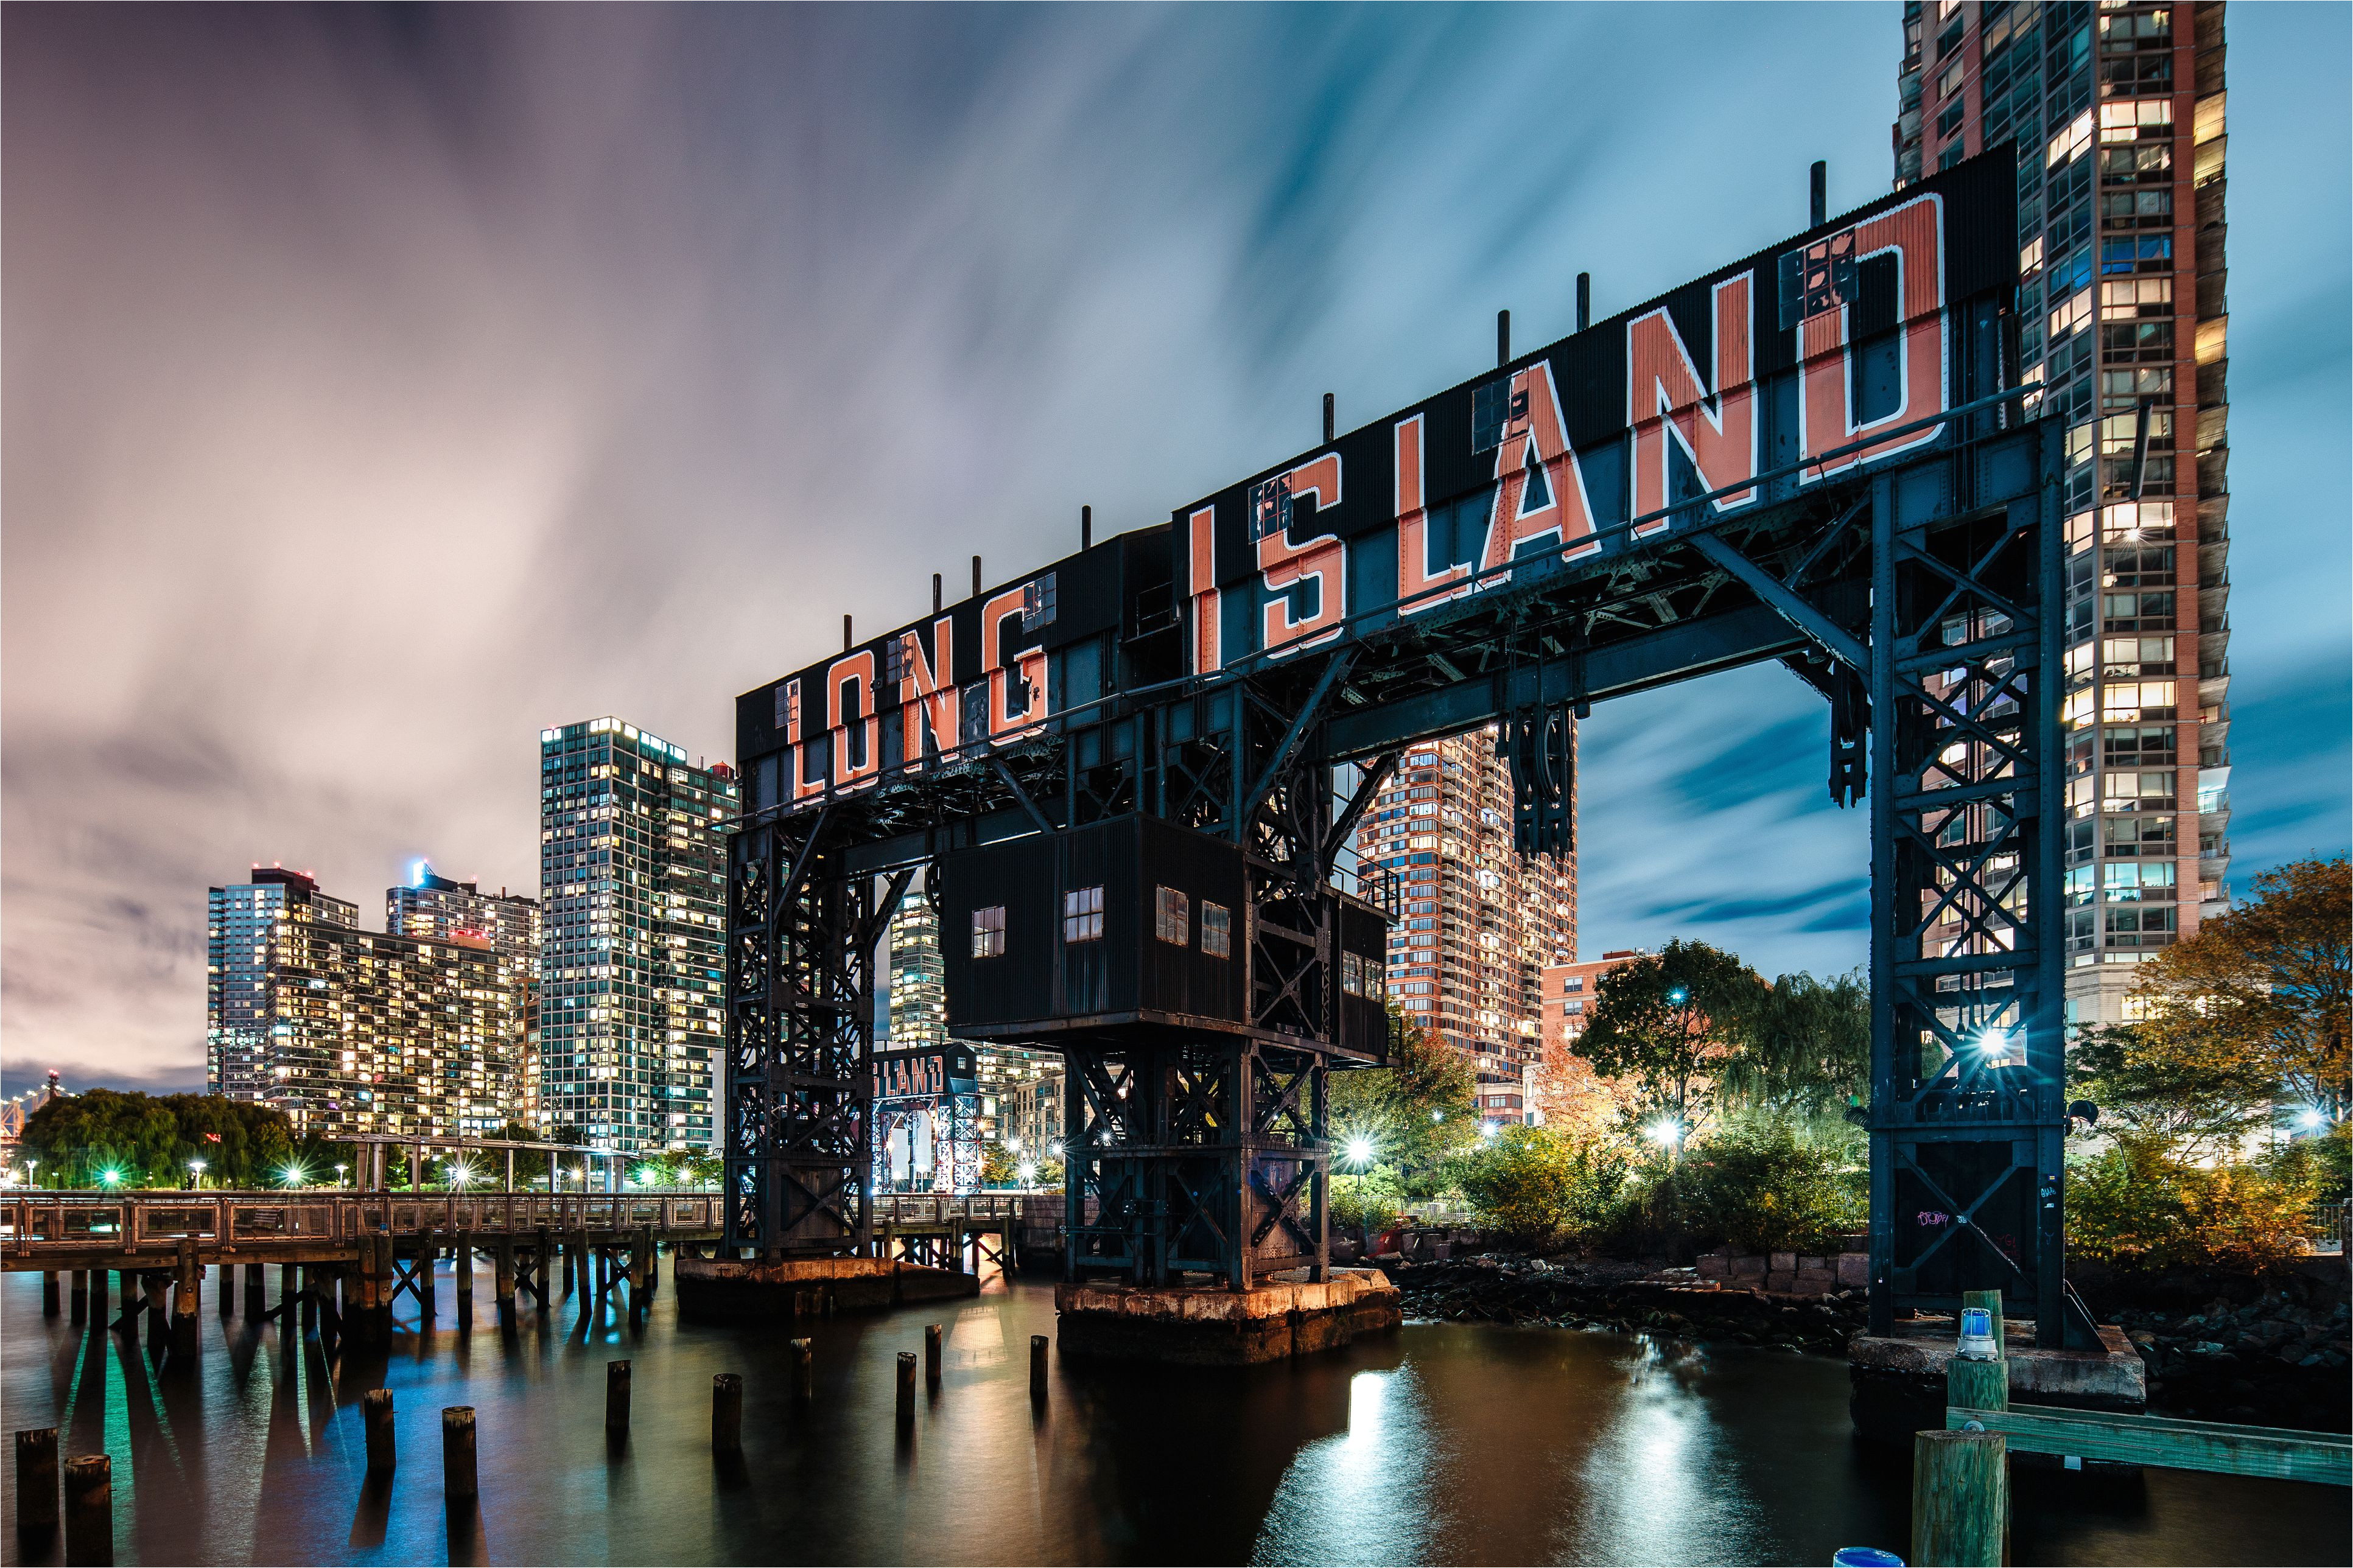 long island city gantry plaza park at night 945259244 5b91ab5c46e0fb00502d43ce jpg